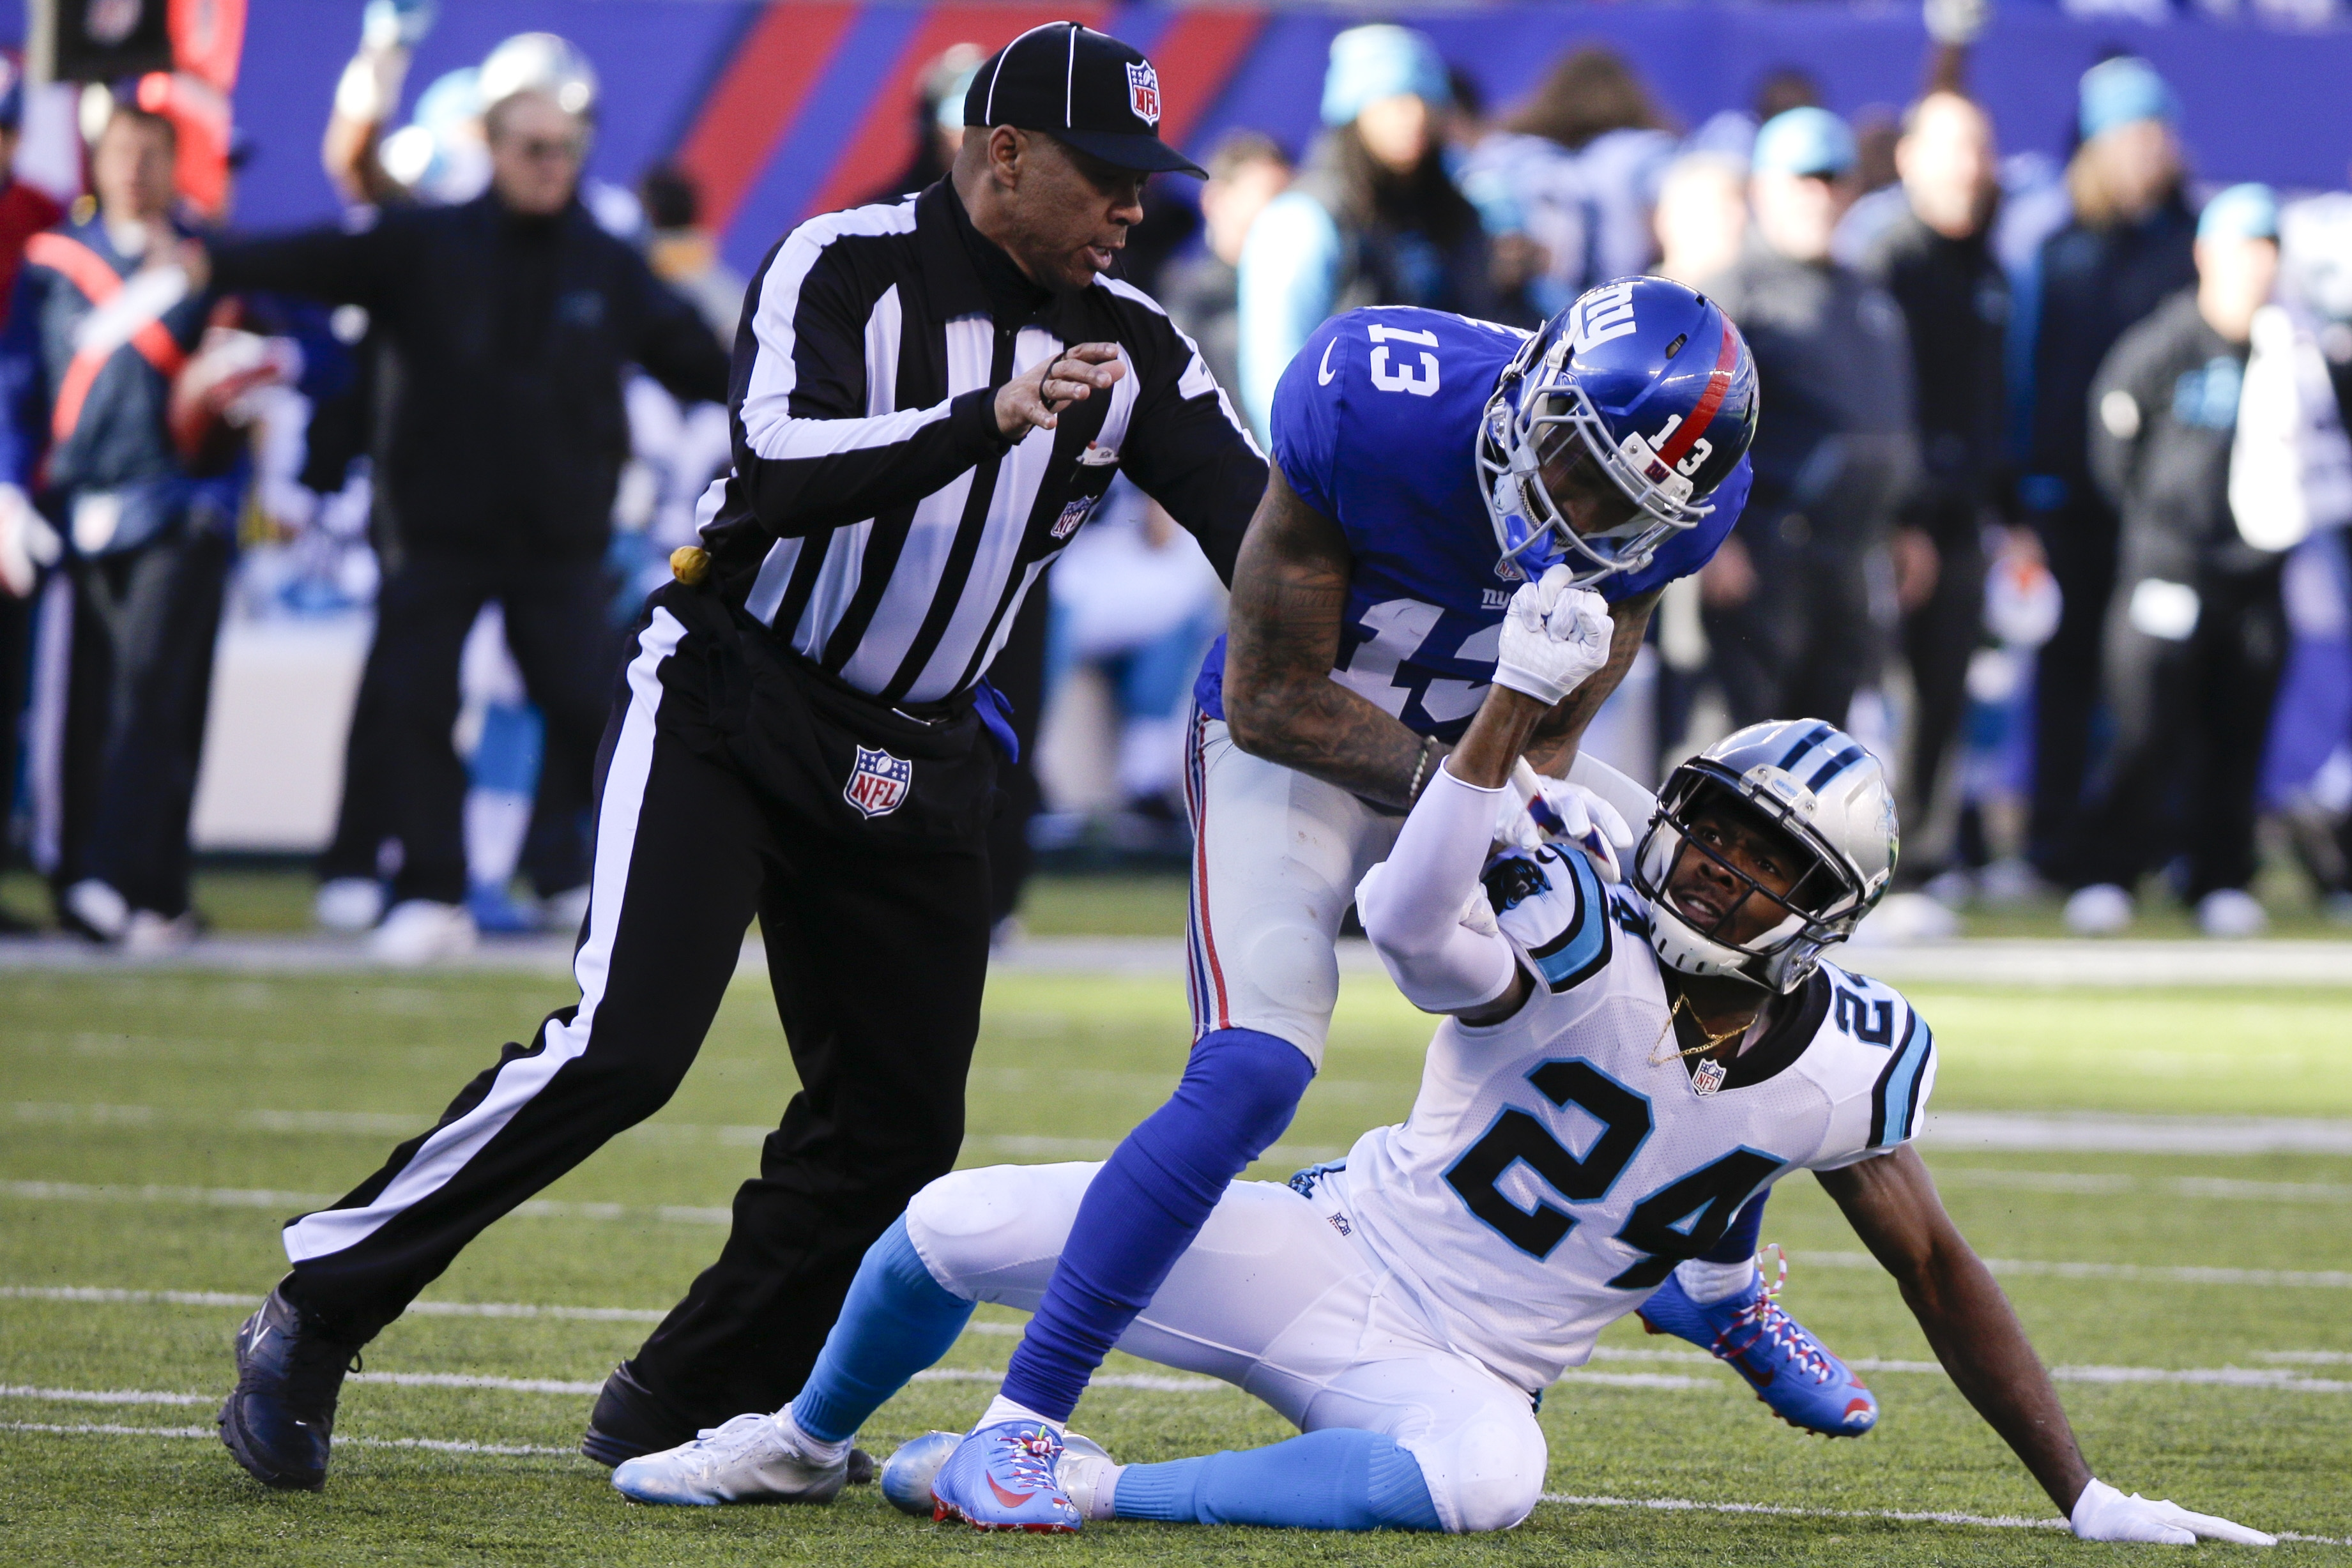 FILE - In this Dec. 20, 2015, file photo, a referee, left, separates New York Giants wide receiver Odell Beckham (13) and Carolina Panthers' Josh Norman (24) during the first half of an NFL football game Sunday, Dec. 20, 2015, in East Rutherford, N.J. The